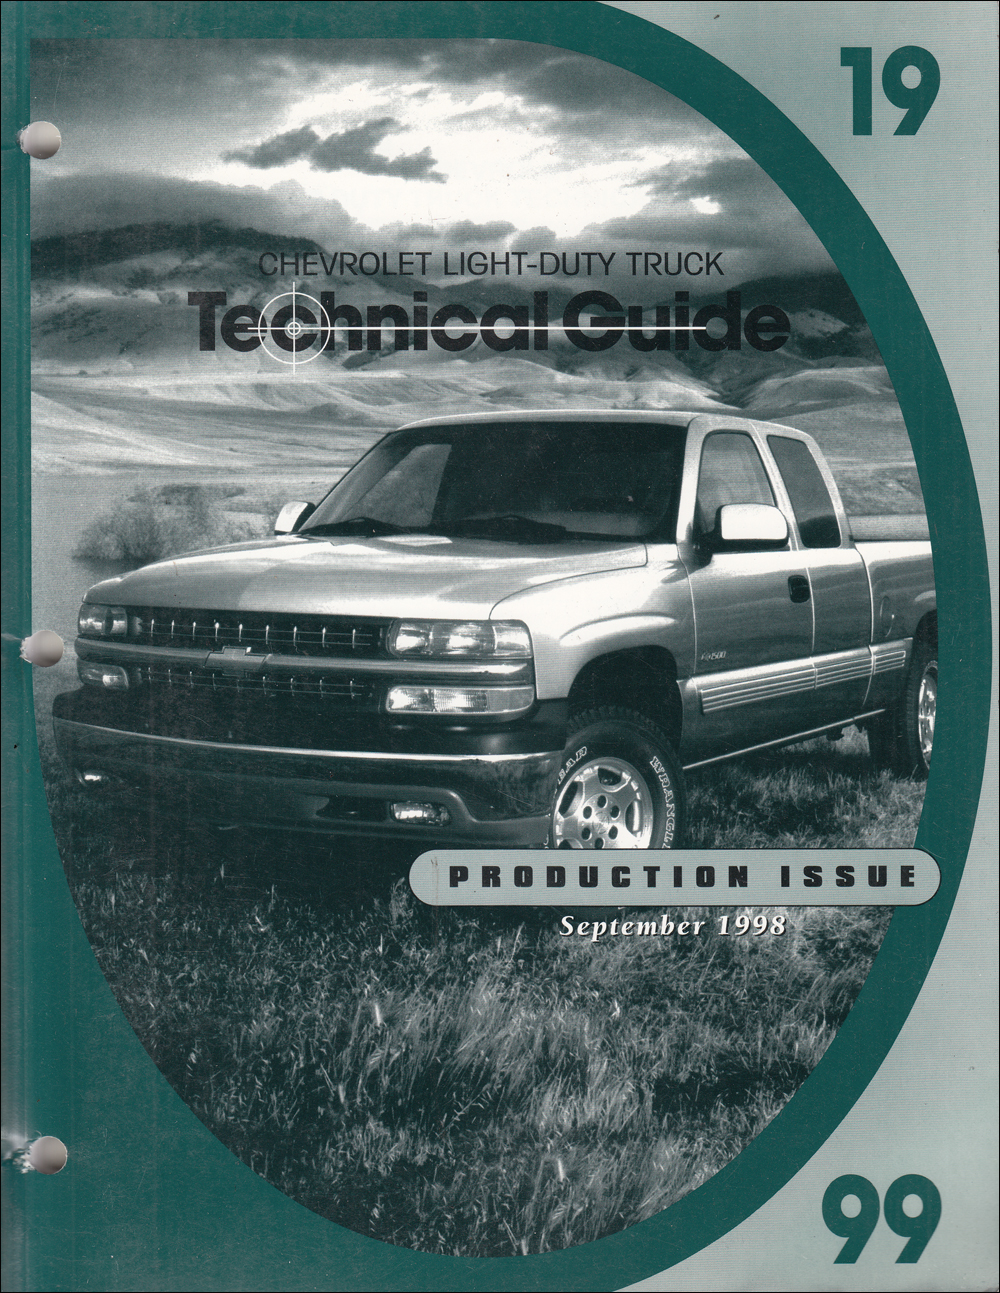 1999 Chevrolet Truck Technical Guide Dealer Album Original Production Issue